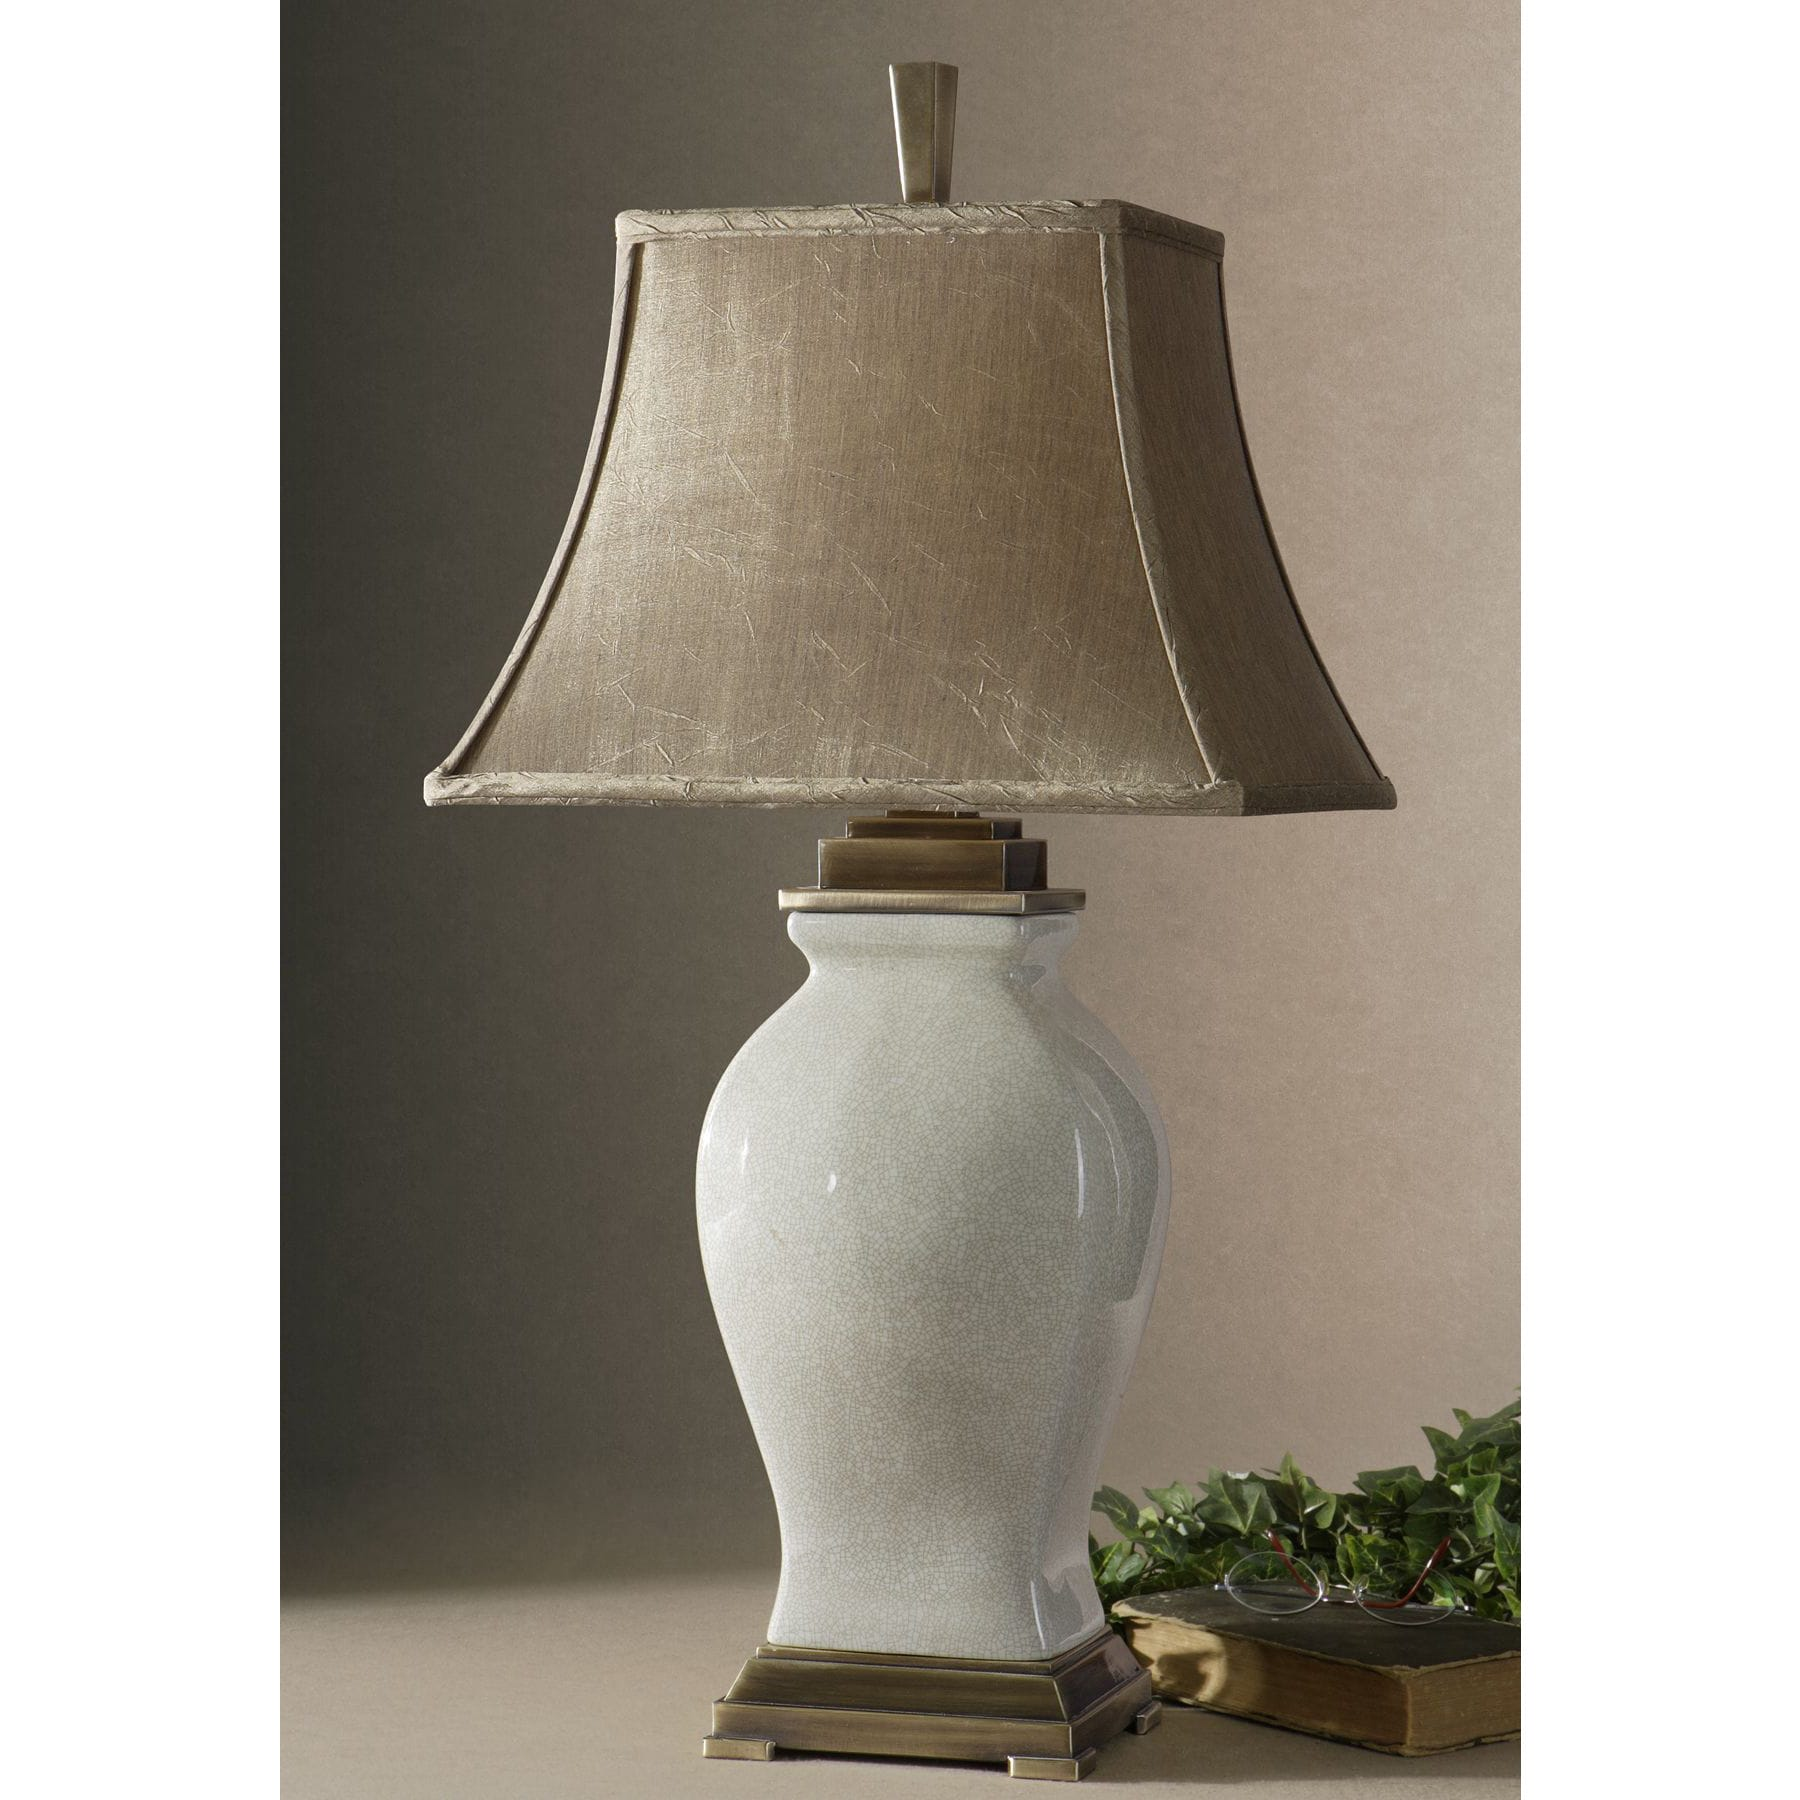 Shop uttermost rory ivory table metal and porcelain table lamp shop uttermost rory ivory table metal and porcelain table lamp free shipping today overstock 9079662 aloadofball Images